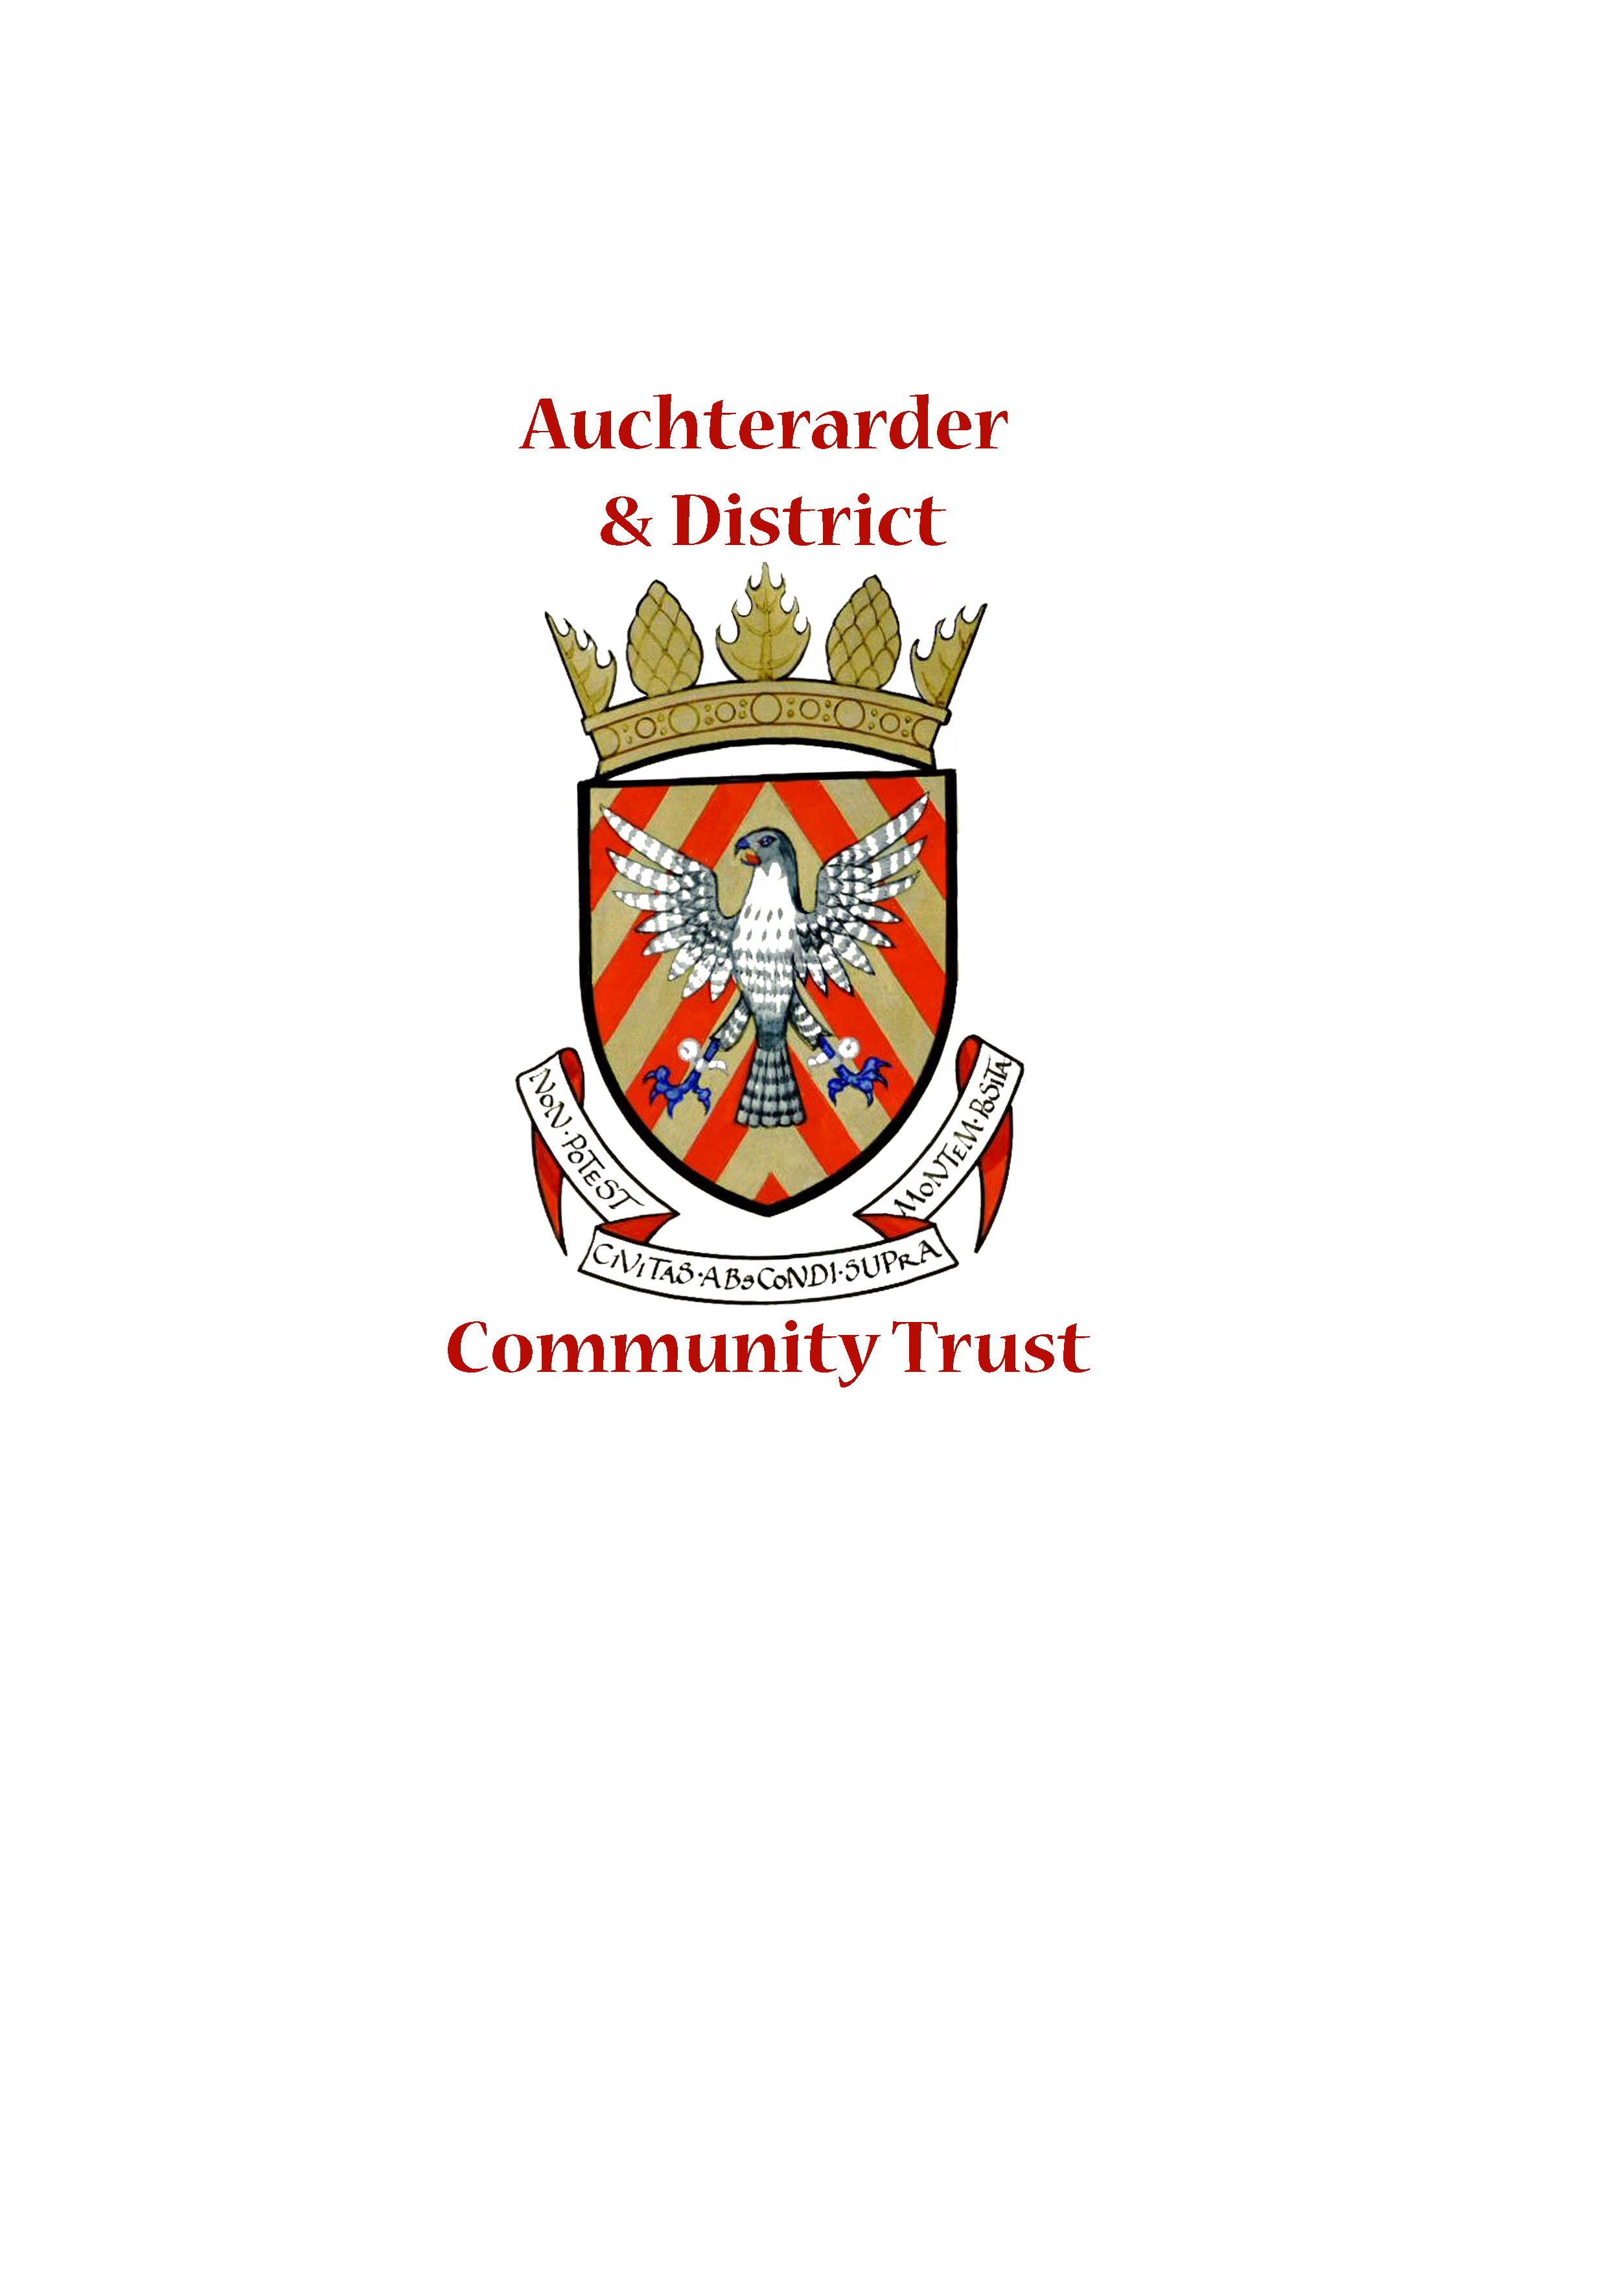 Auchterarder & District Community Trust